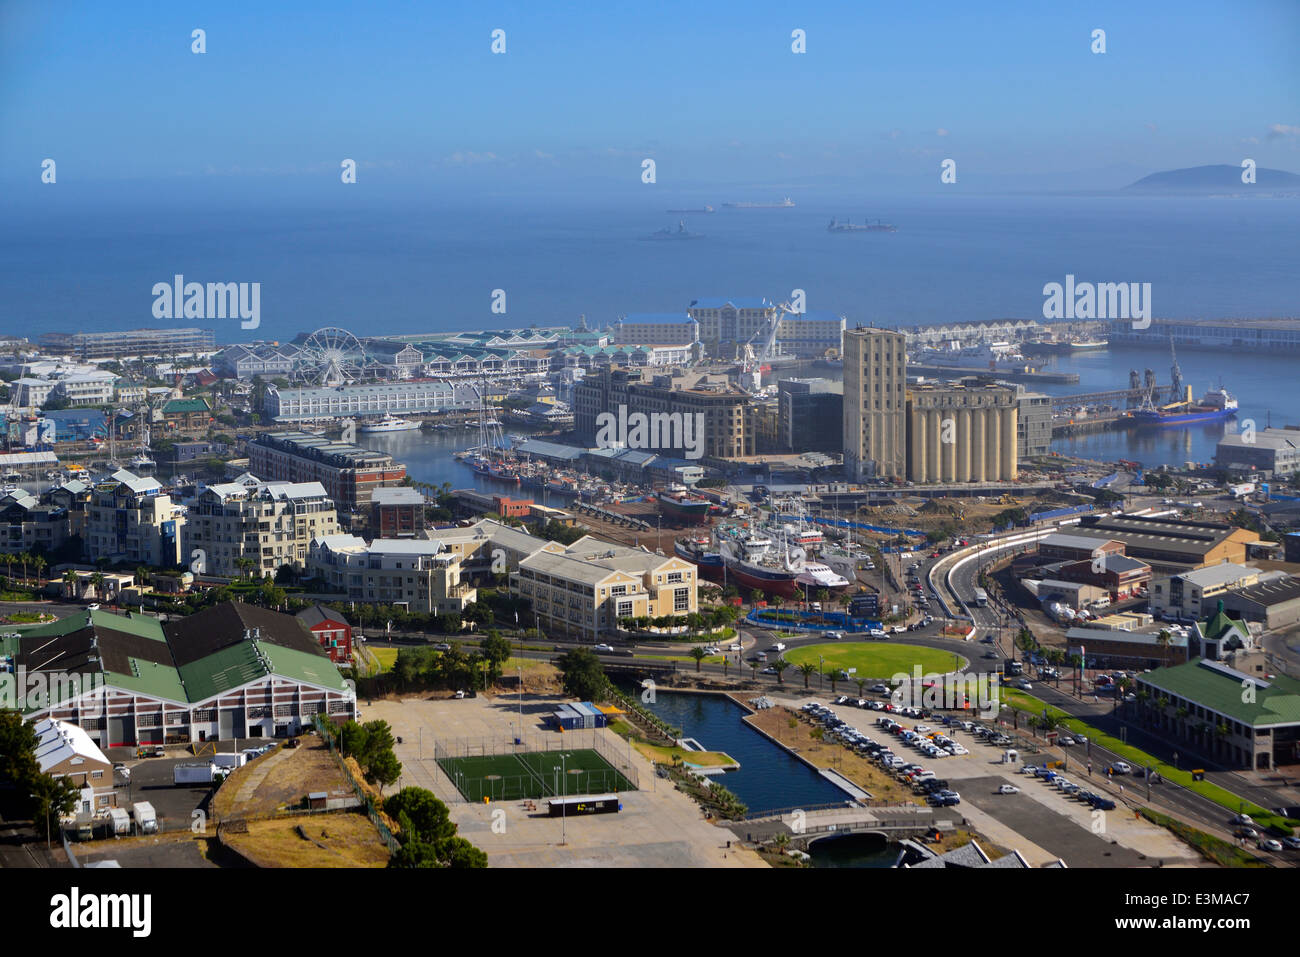 African Architecture & Buildings Atlantic Ocean Boats Buildings Built Structures Cape Peninsula Cape Town City - Stock Image